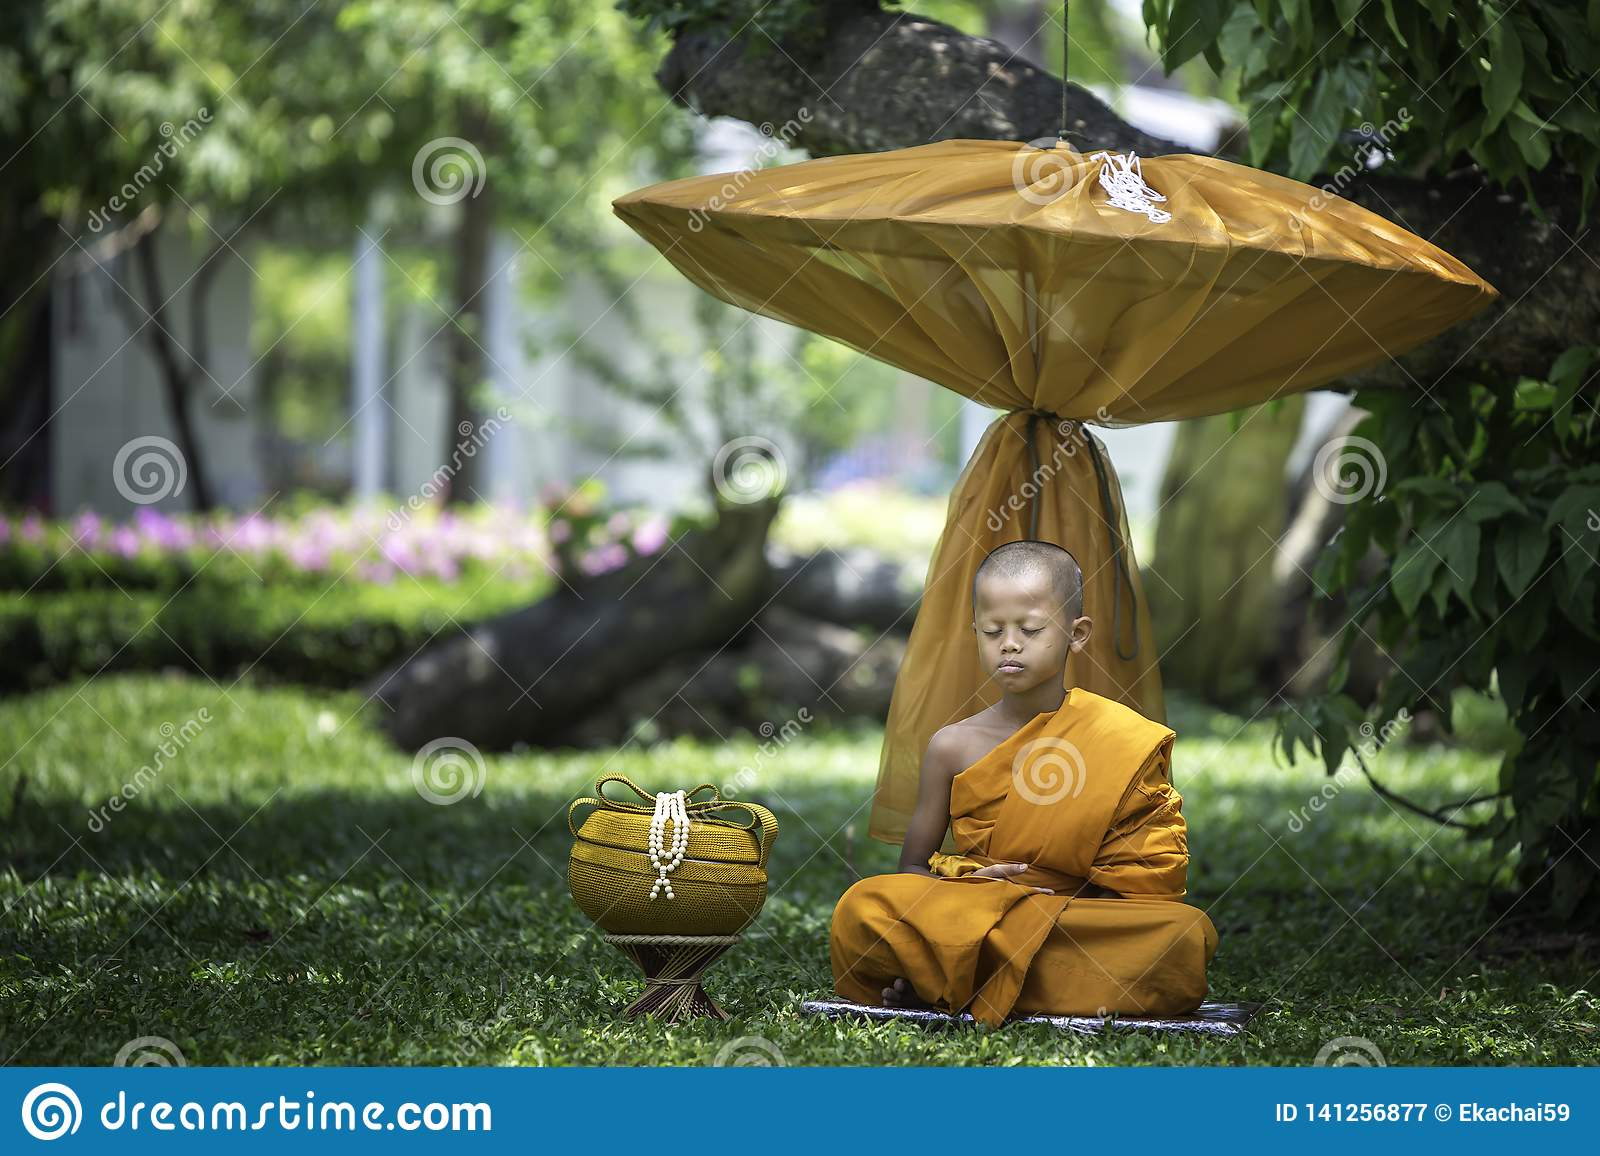 A small novice is meditating under the tree.